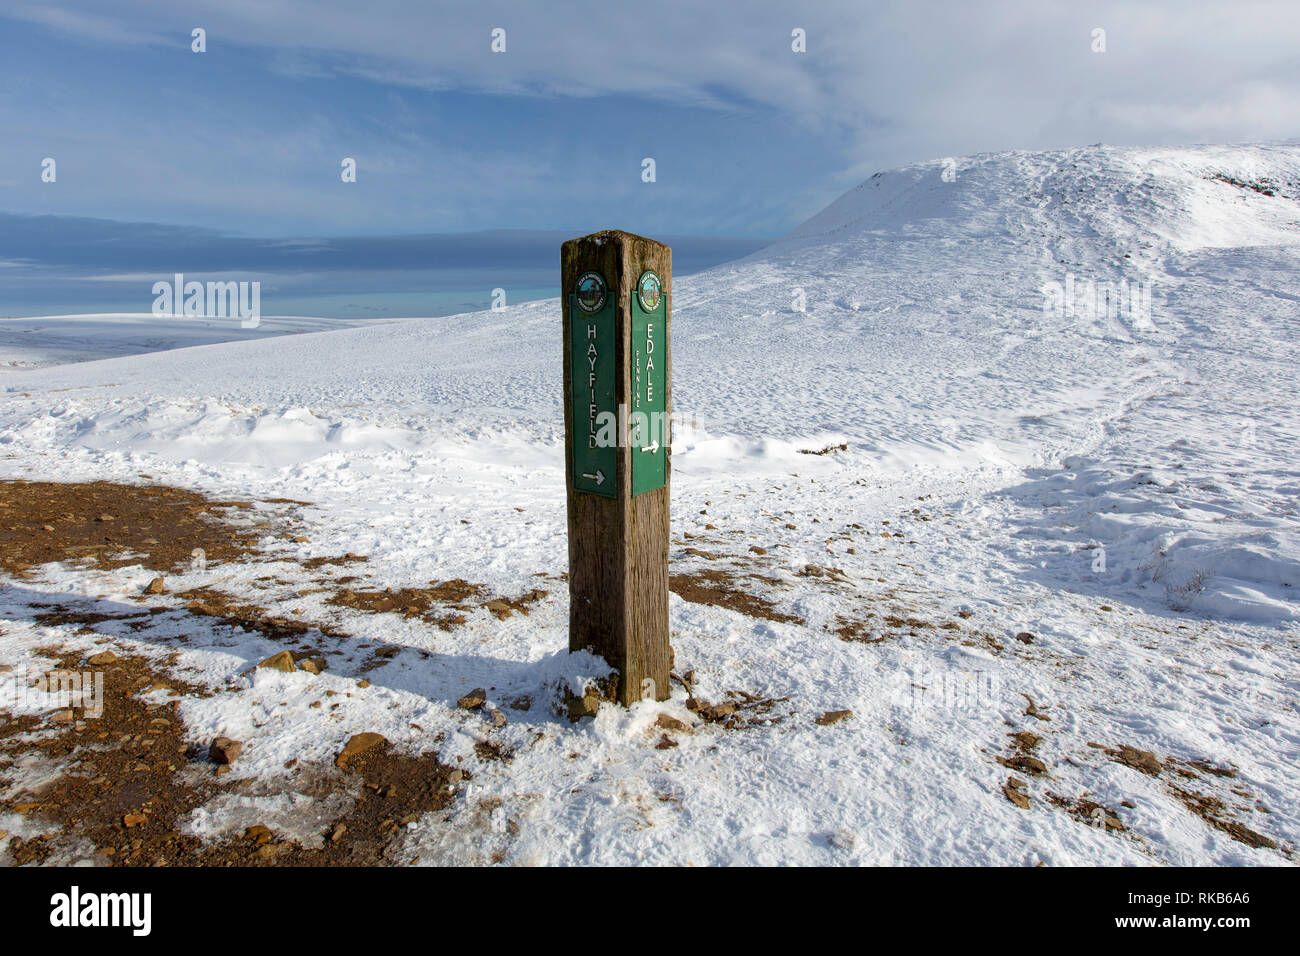 A footpath sign post showing the Pennine Way below Kinder Scout in the Derbyshire Peak District. - Stock Image